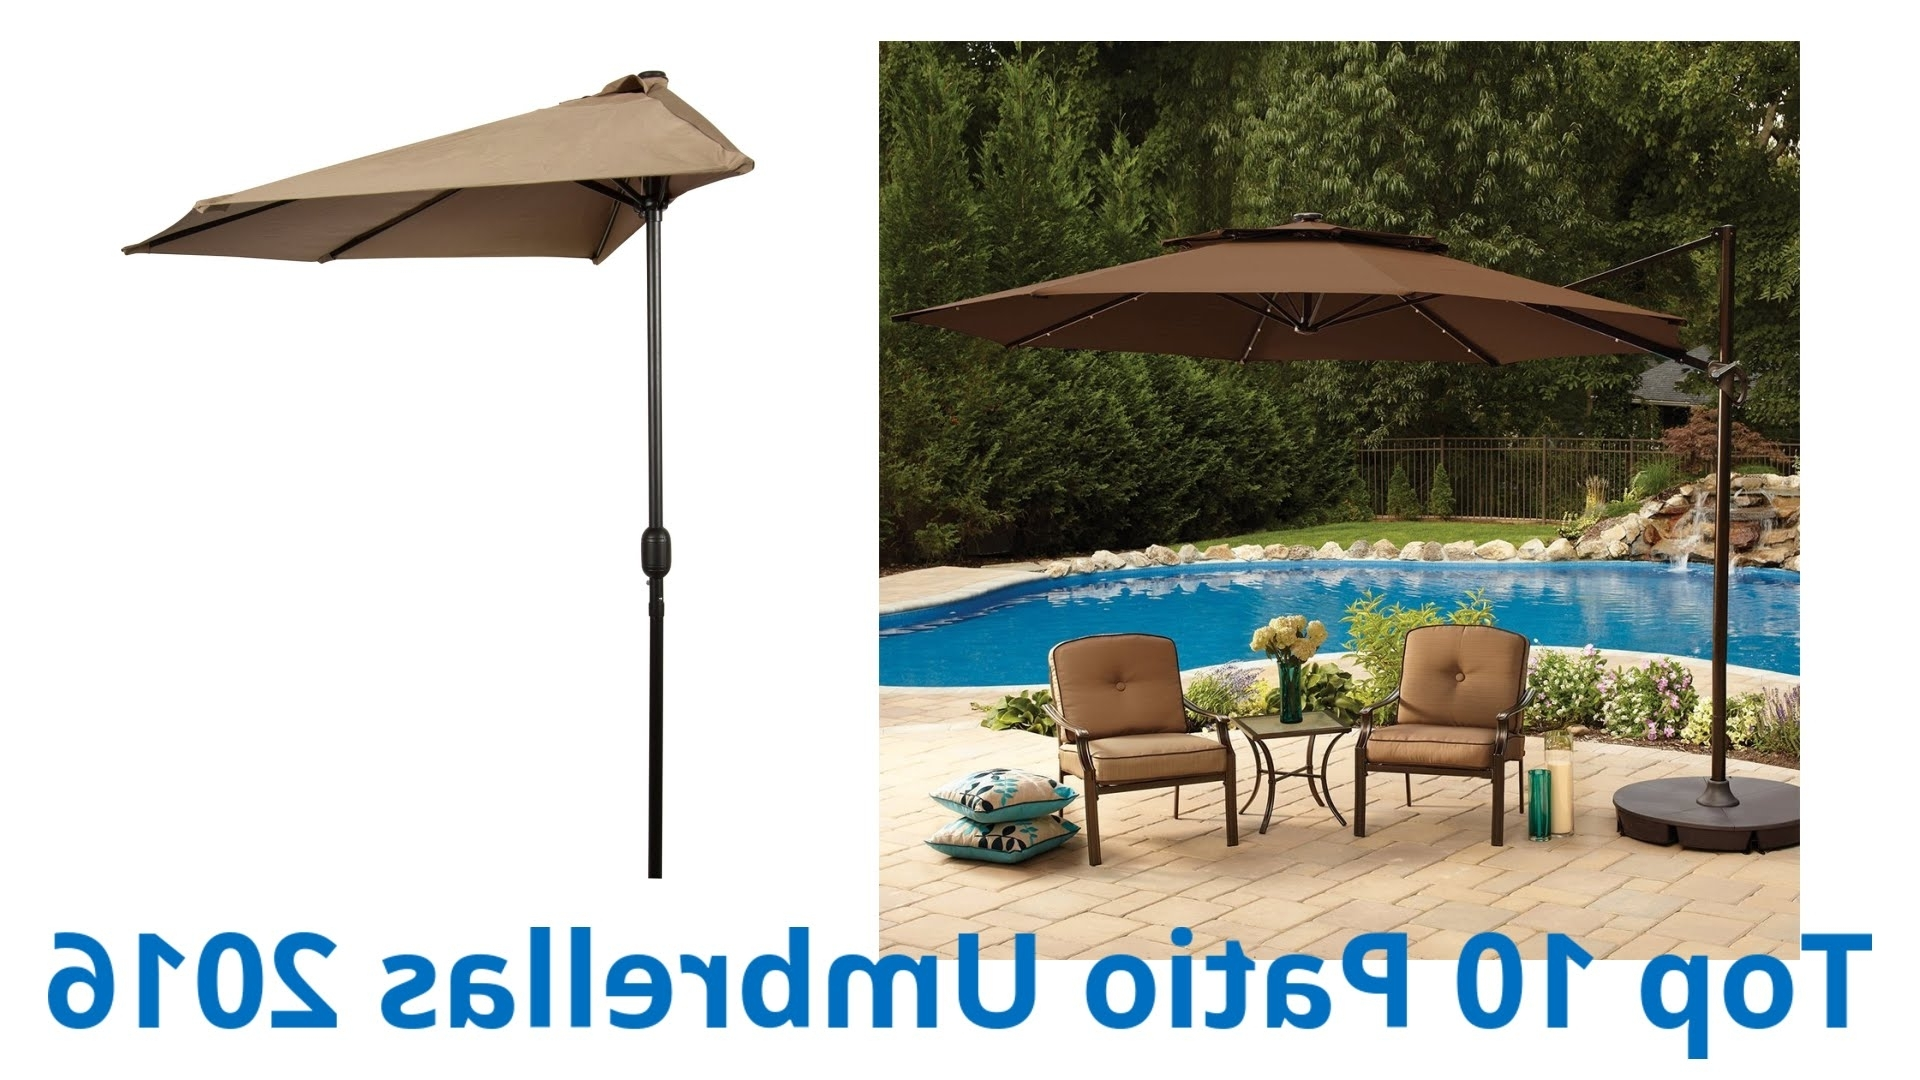 10 Best Patio Umbrellas 2016 – Youtube For Most Recently Released Patio Umbrellas For High Wind Areas (Gallery 11 of 20)